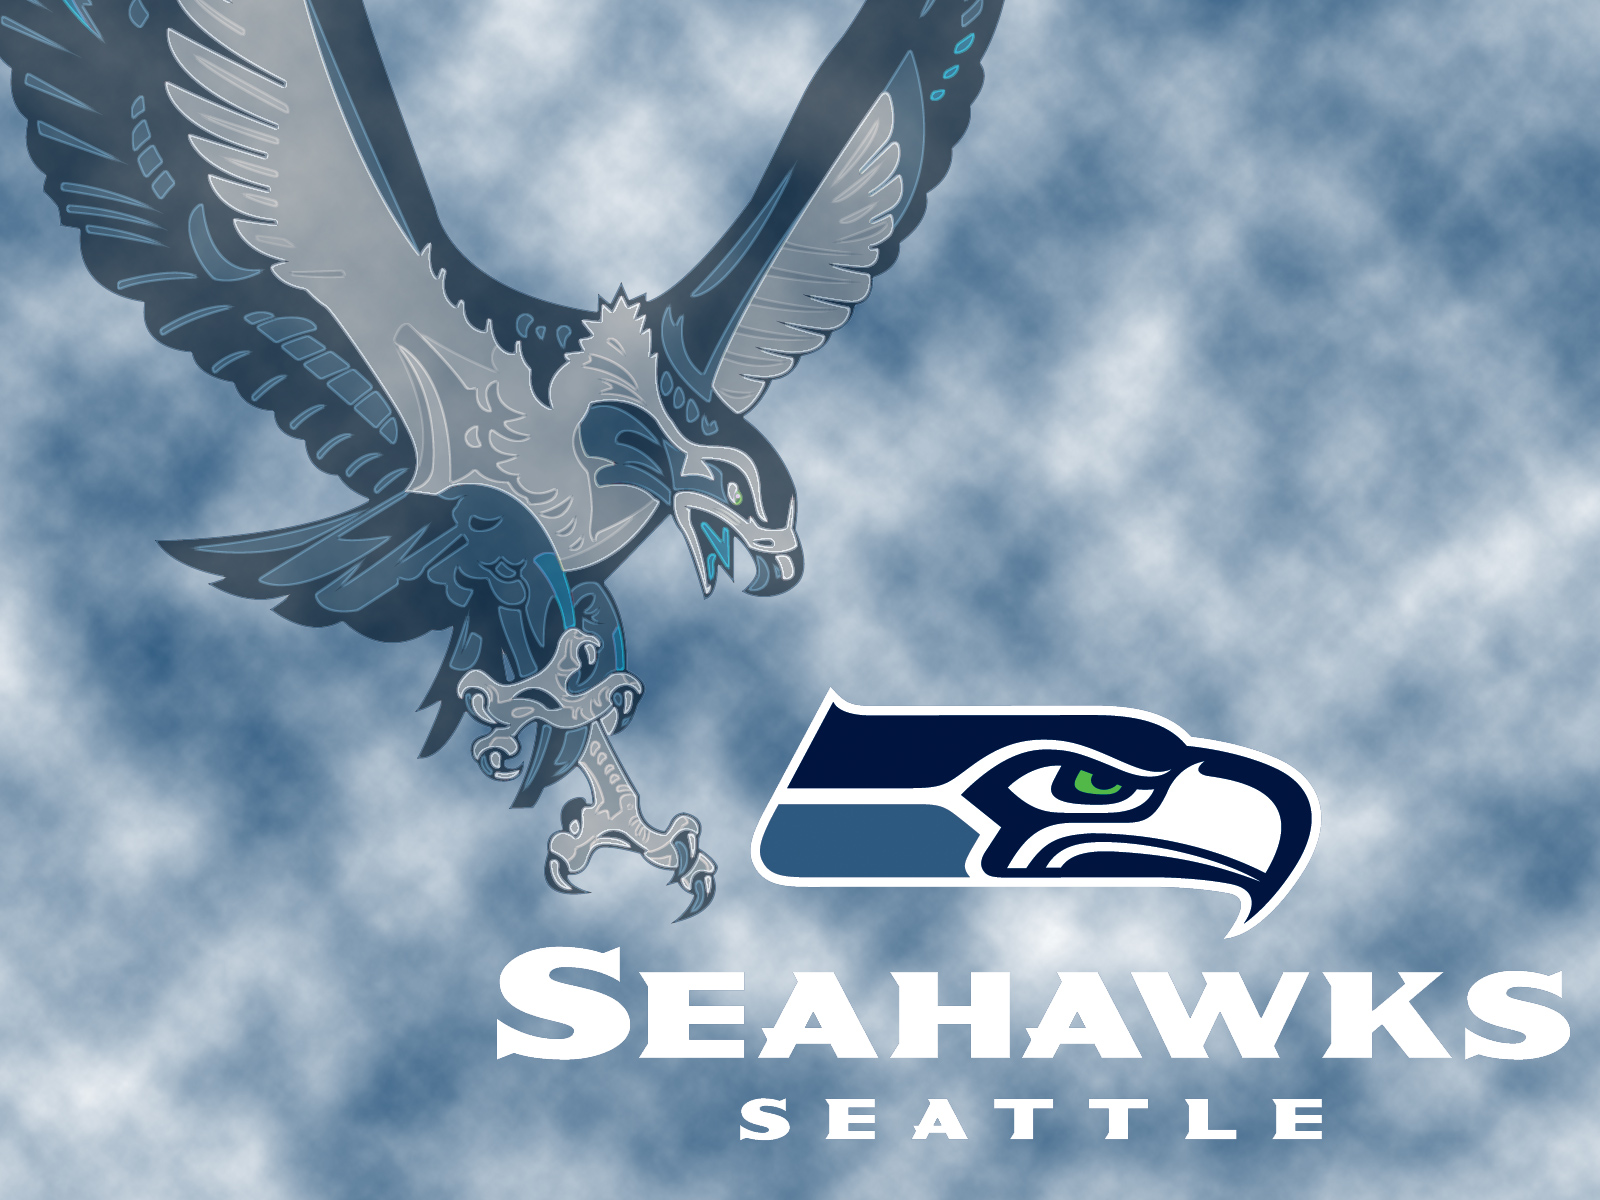 Pin Seattle Seahawks Wallpaper On Pinterest